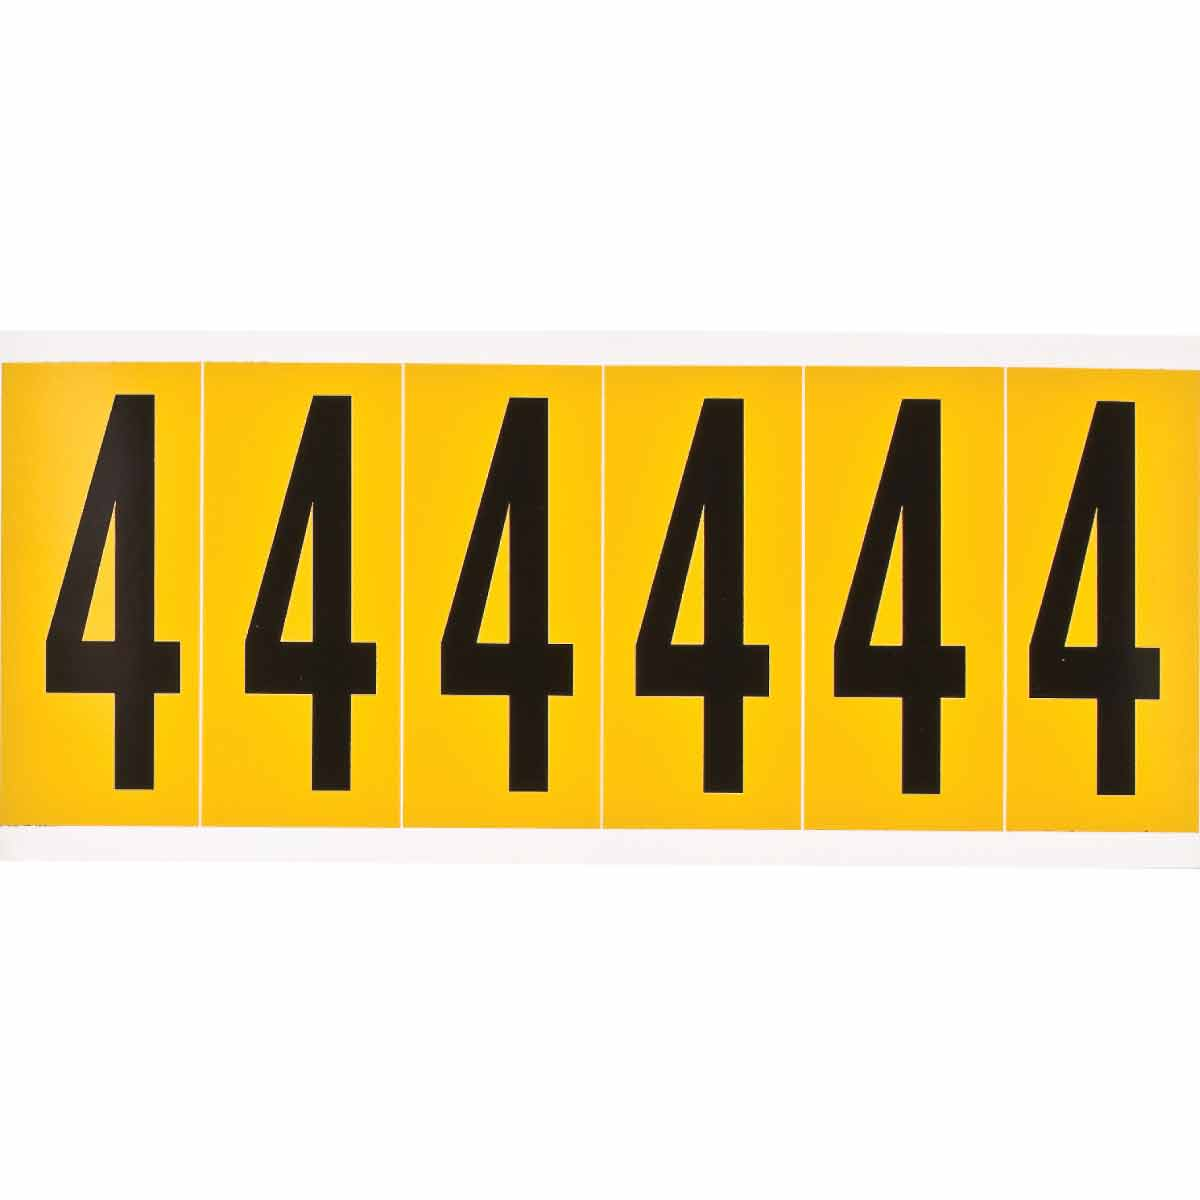 Brady® 1550-4 Non-Reflective Standard Number Label, 2.938 in H Black 4 Character, Yellow Background, B-946 Vinyl